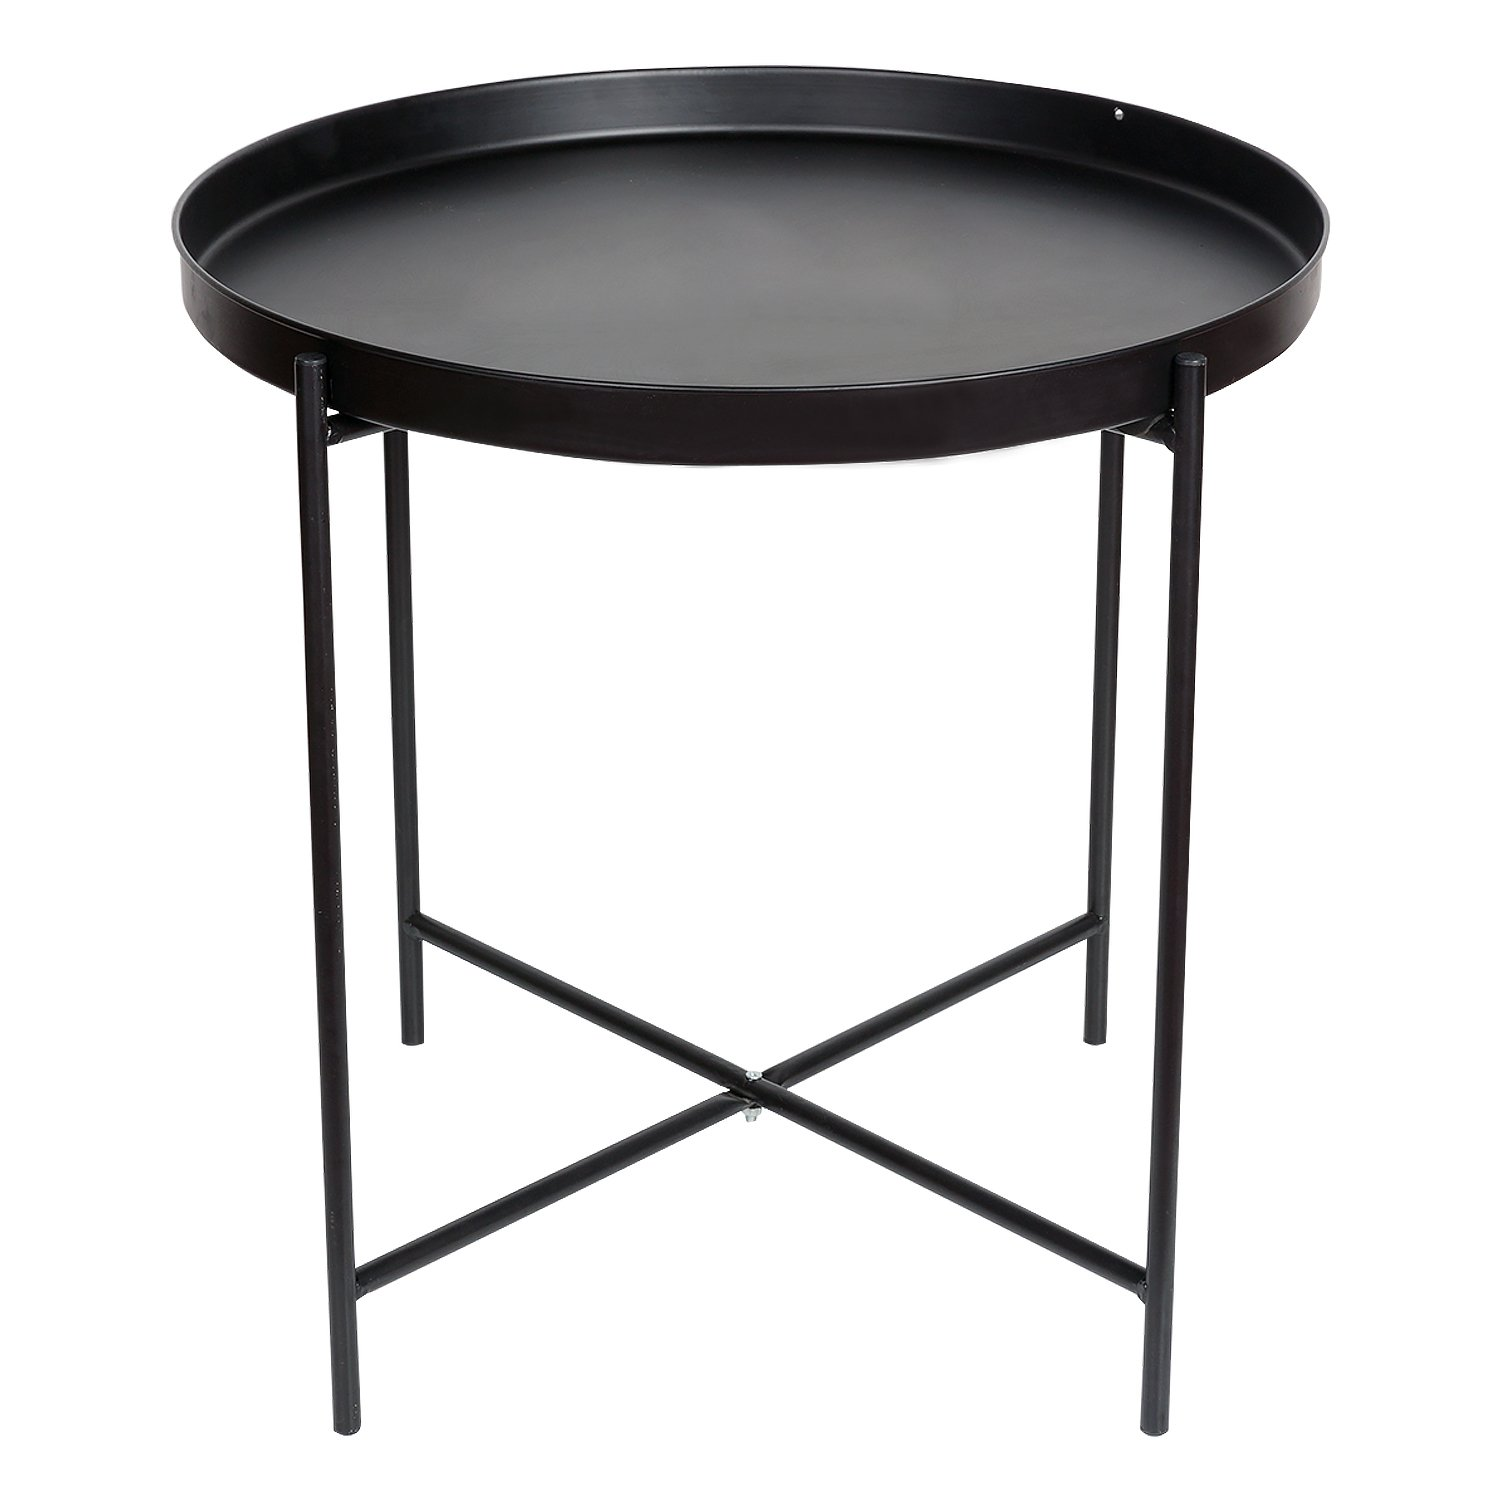 HollyHOME Folding Tray Metal End Table Black,Can be Used as Circle Foldable Side Tables,Best Scalloped Console Table for Your Home